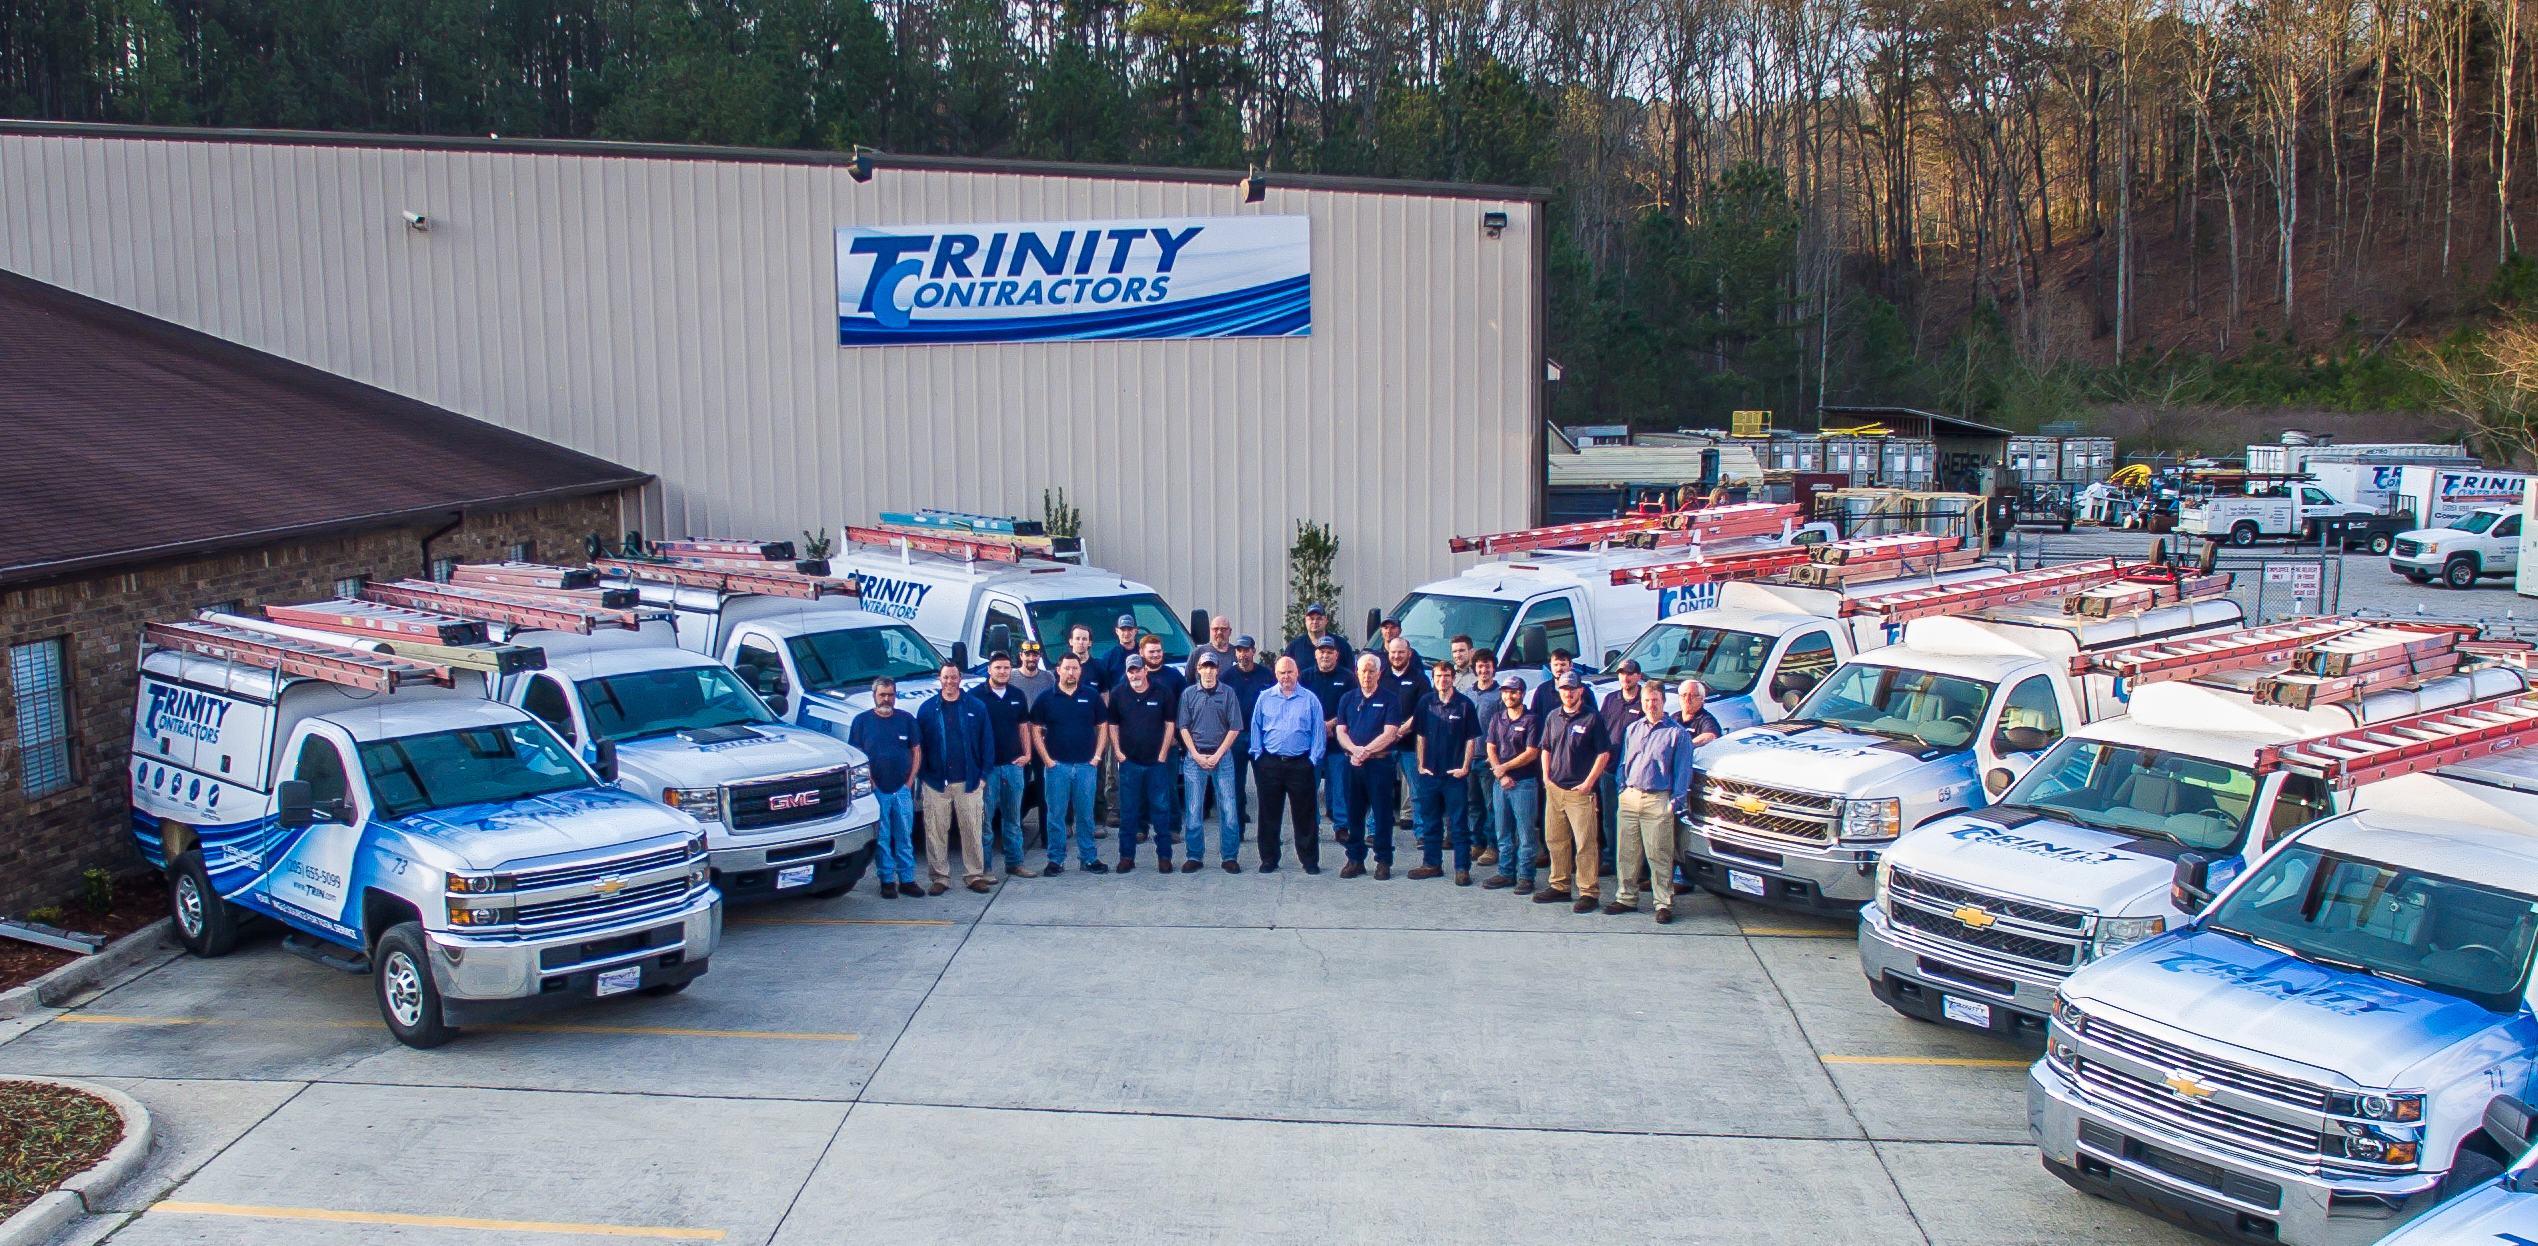 Trinity Contractors, central Alabama's 'single source for total service'